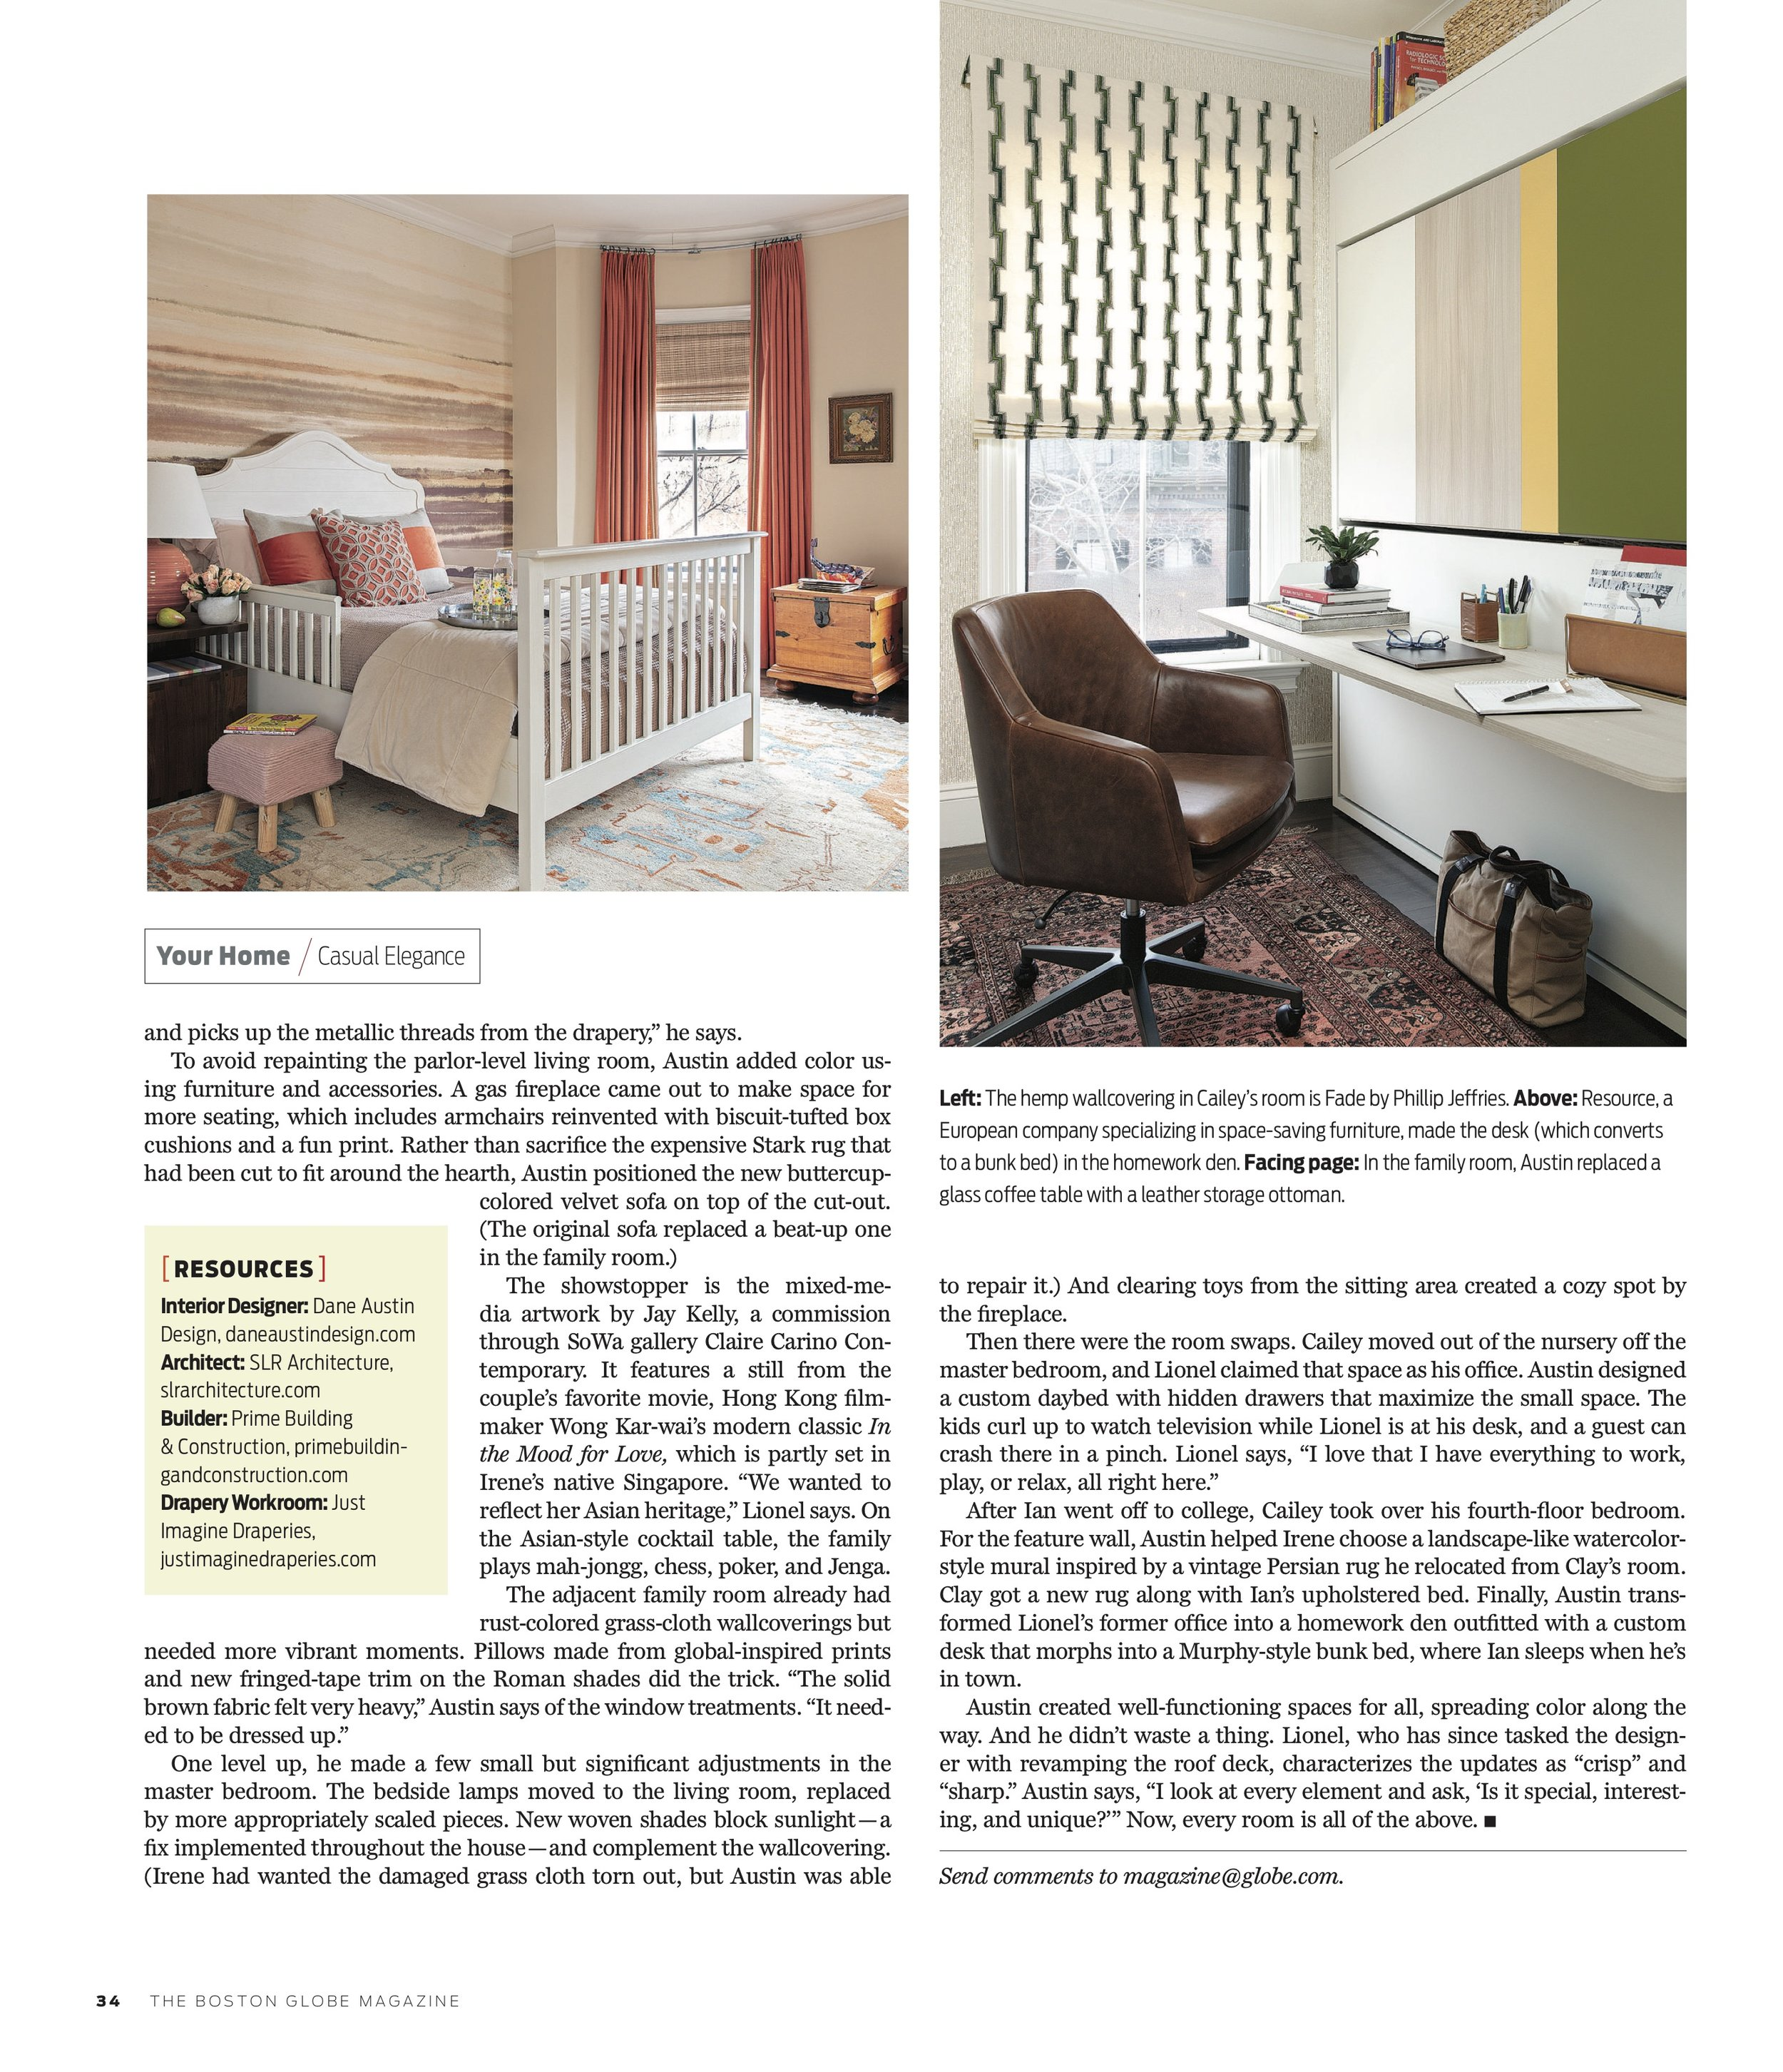 Dane Austin Design featured in Boston Globe Magazine March 2019 3